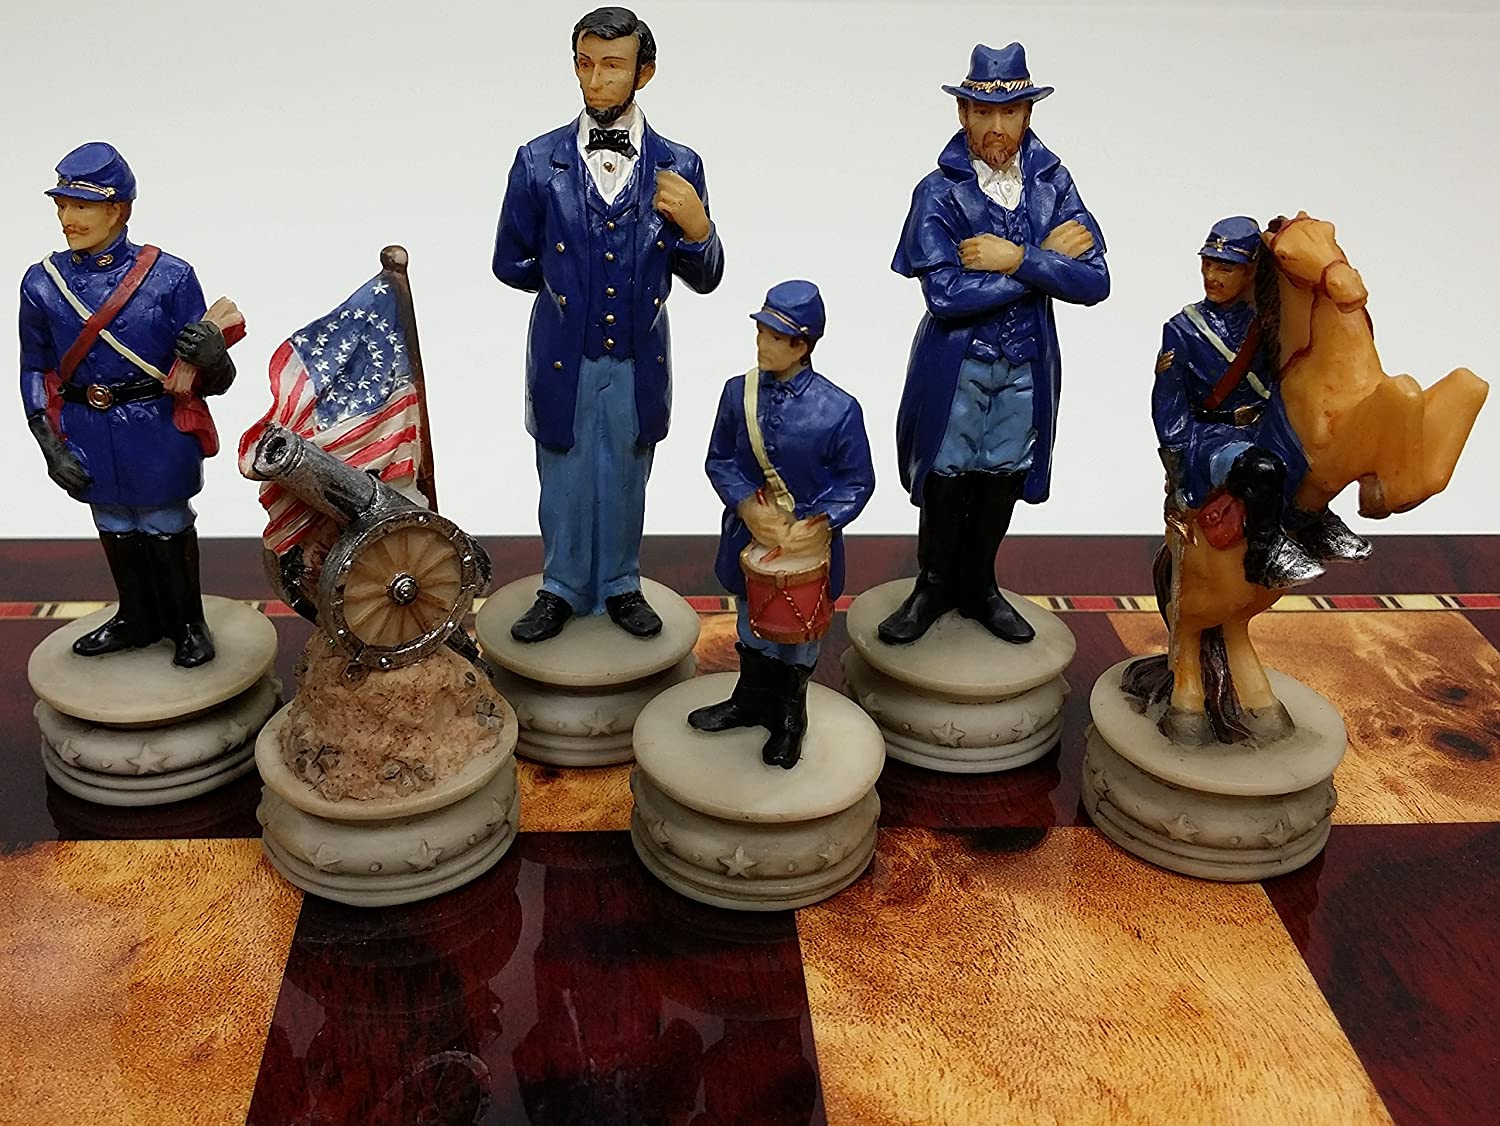 US Generals Civil War Set of Chess Men Pieces Hand Painted – No Board